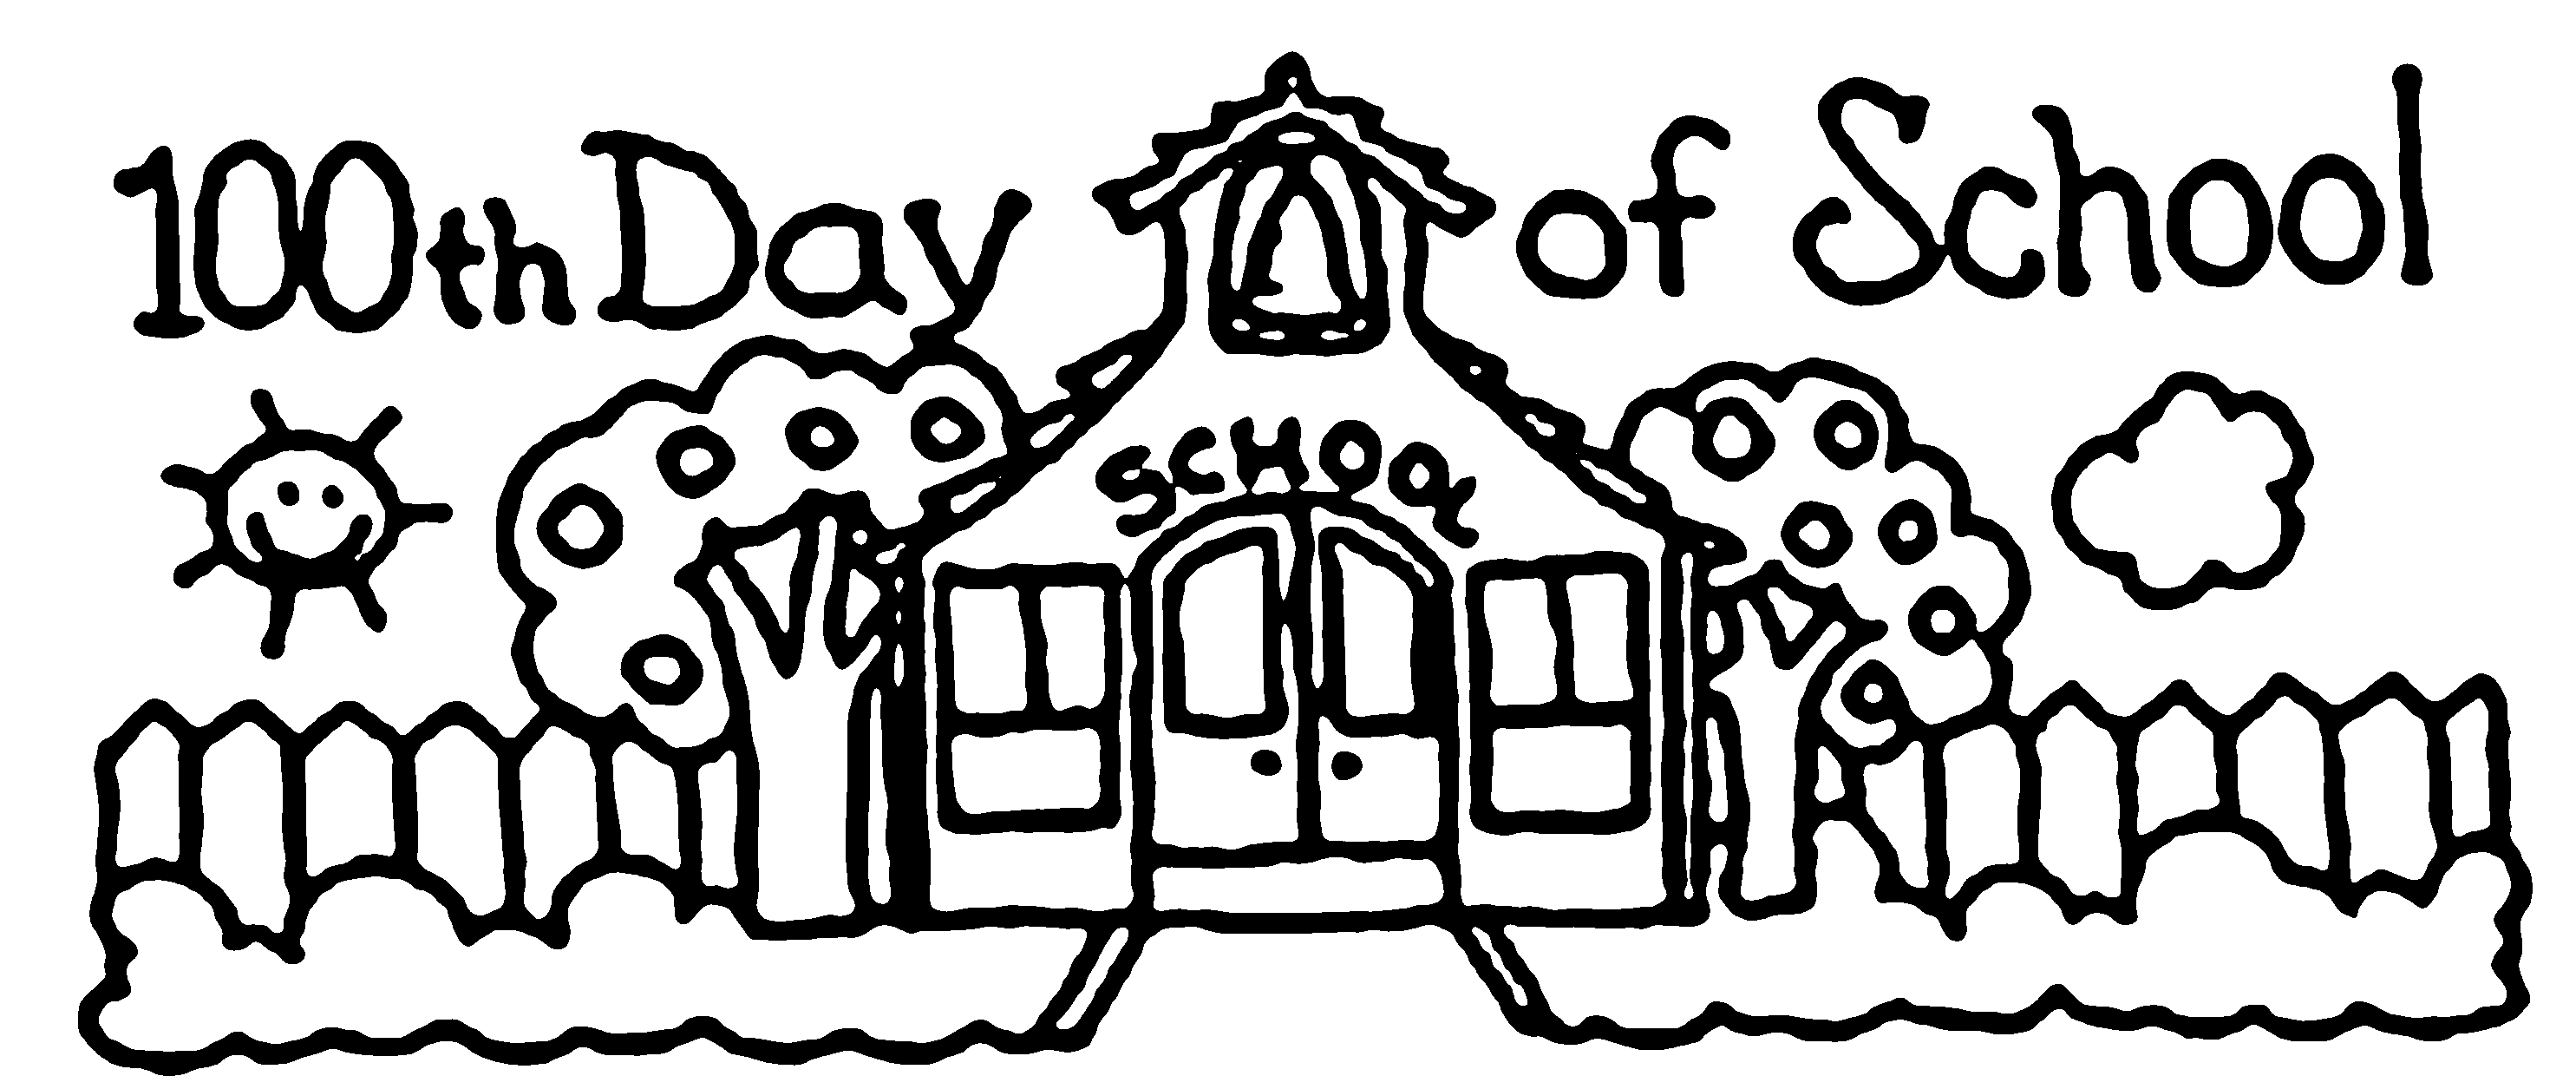 100th Day Of School Coloring Pages Free